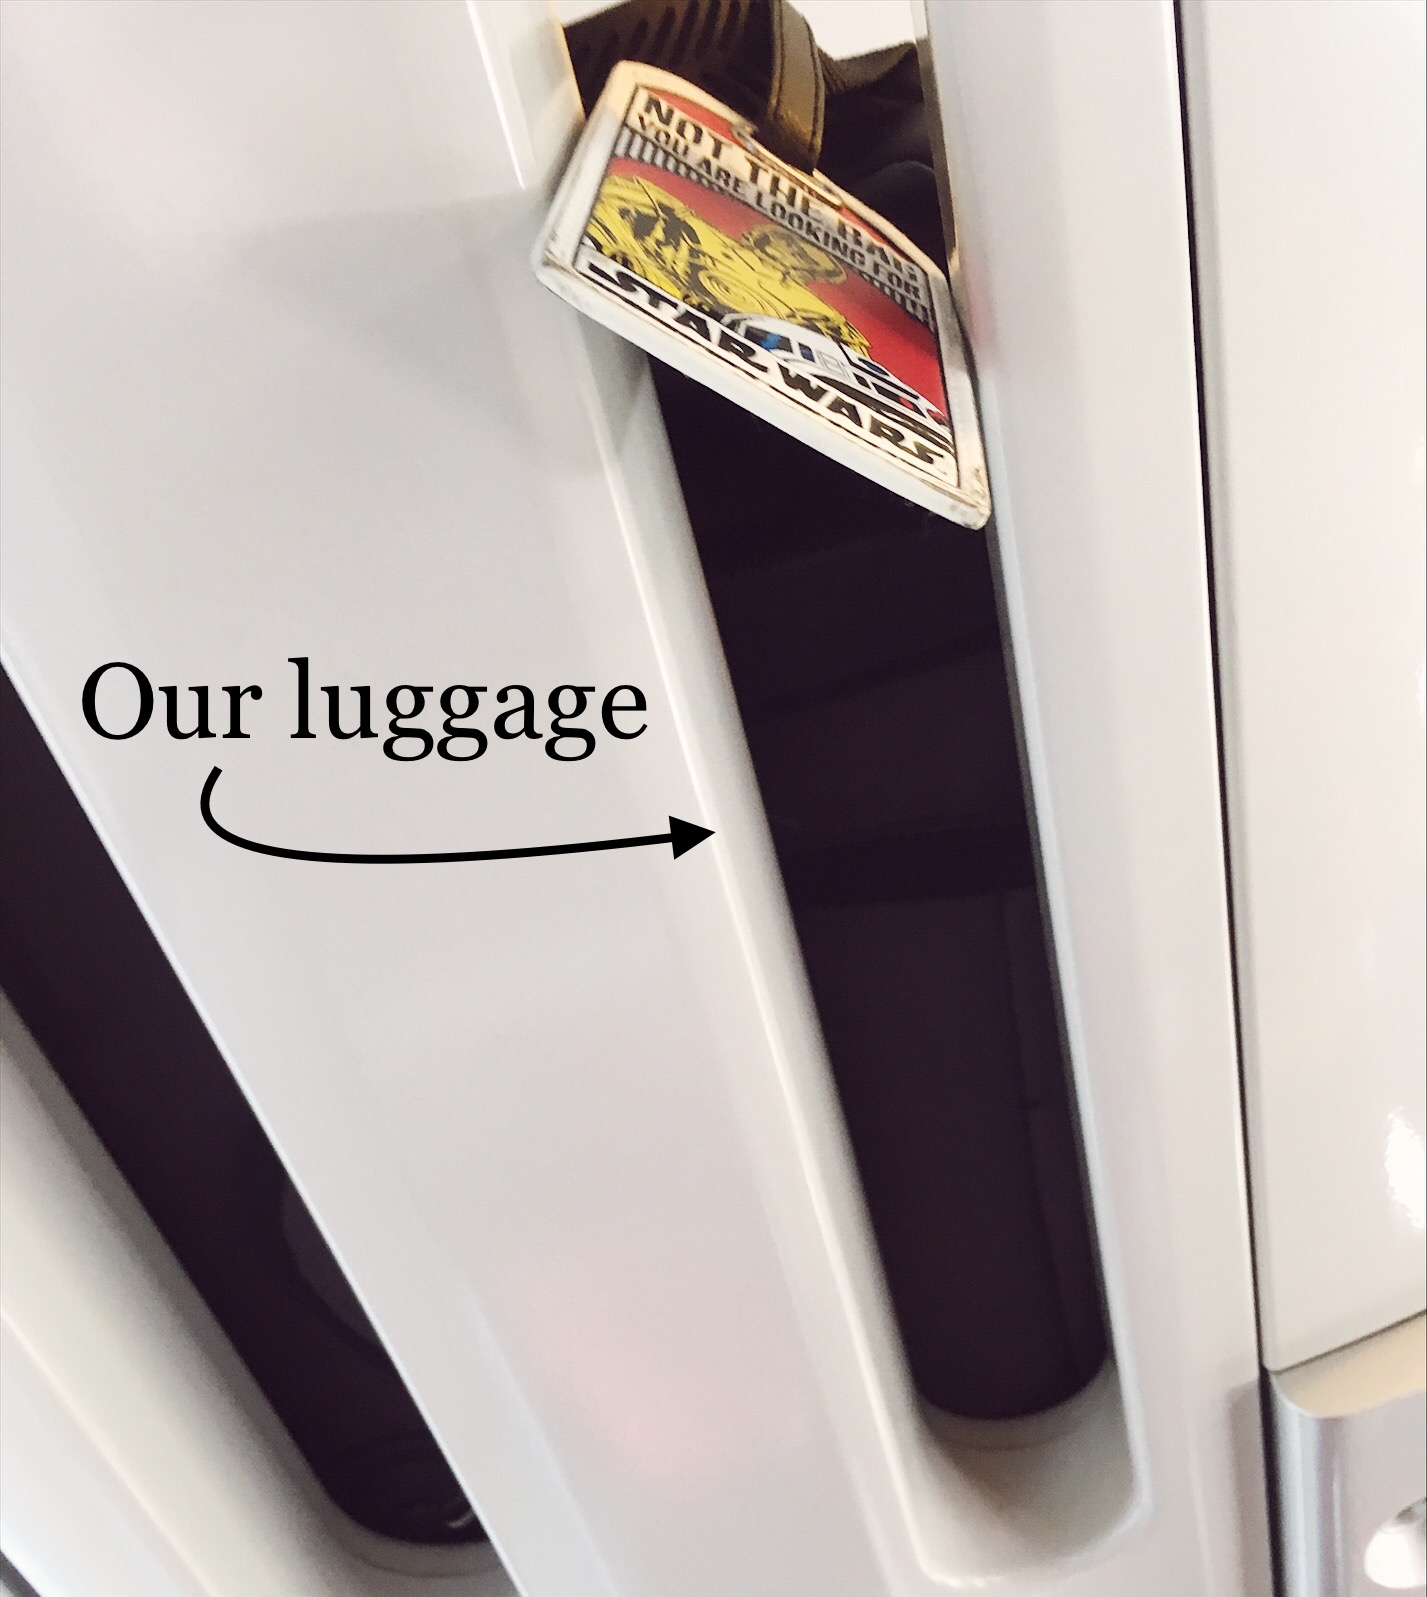 Luggage on train